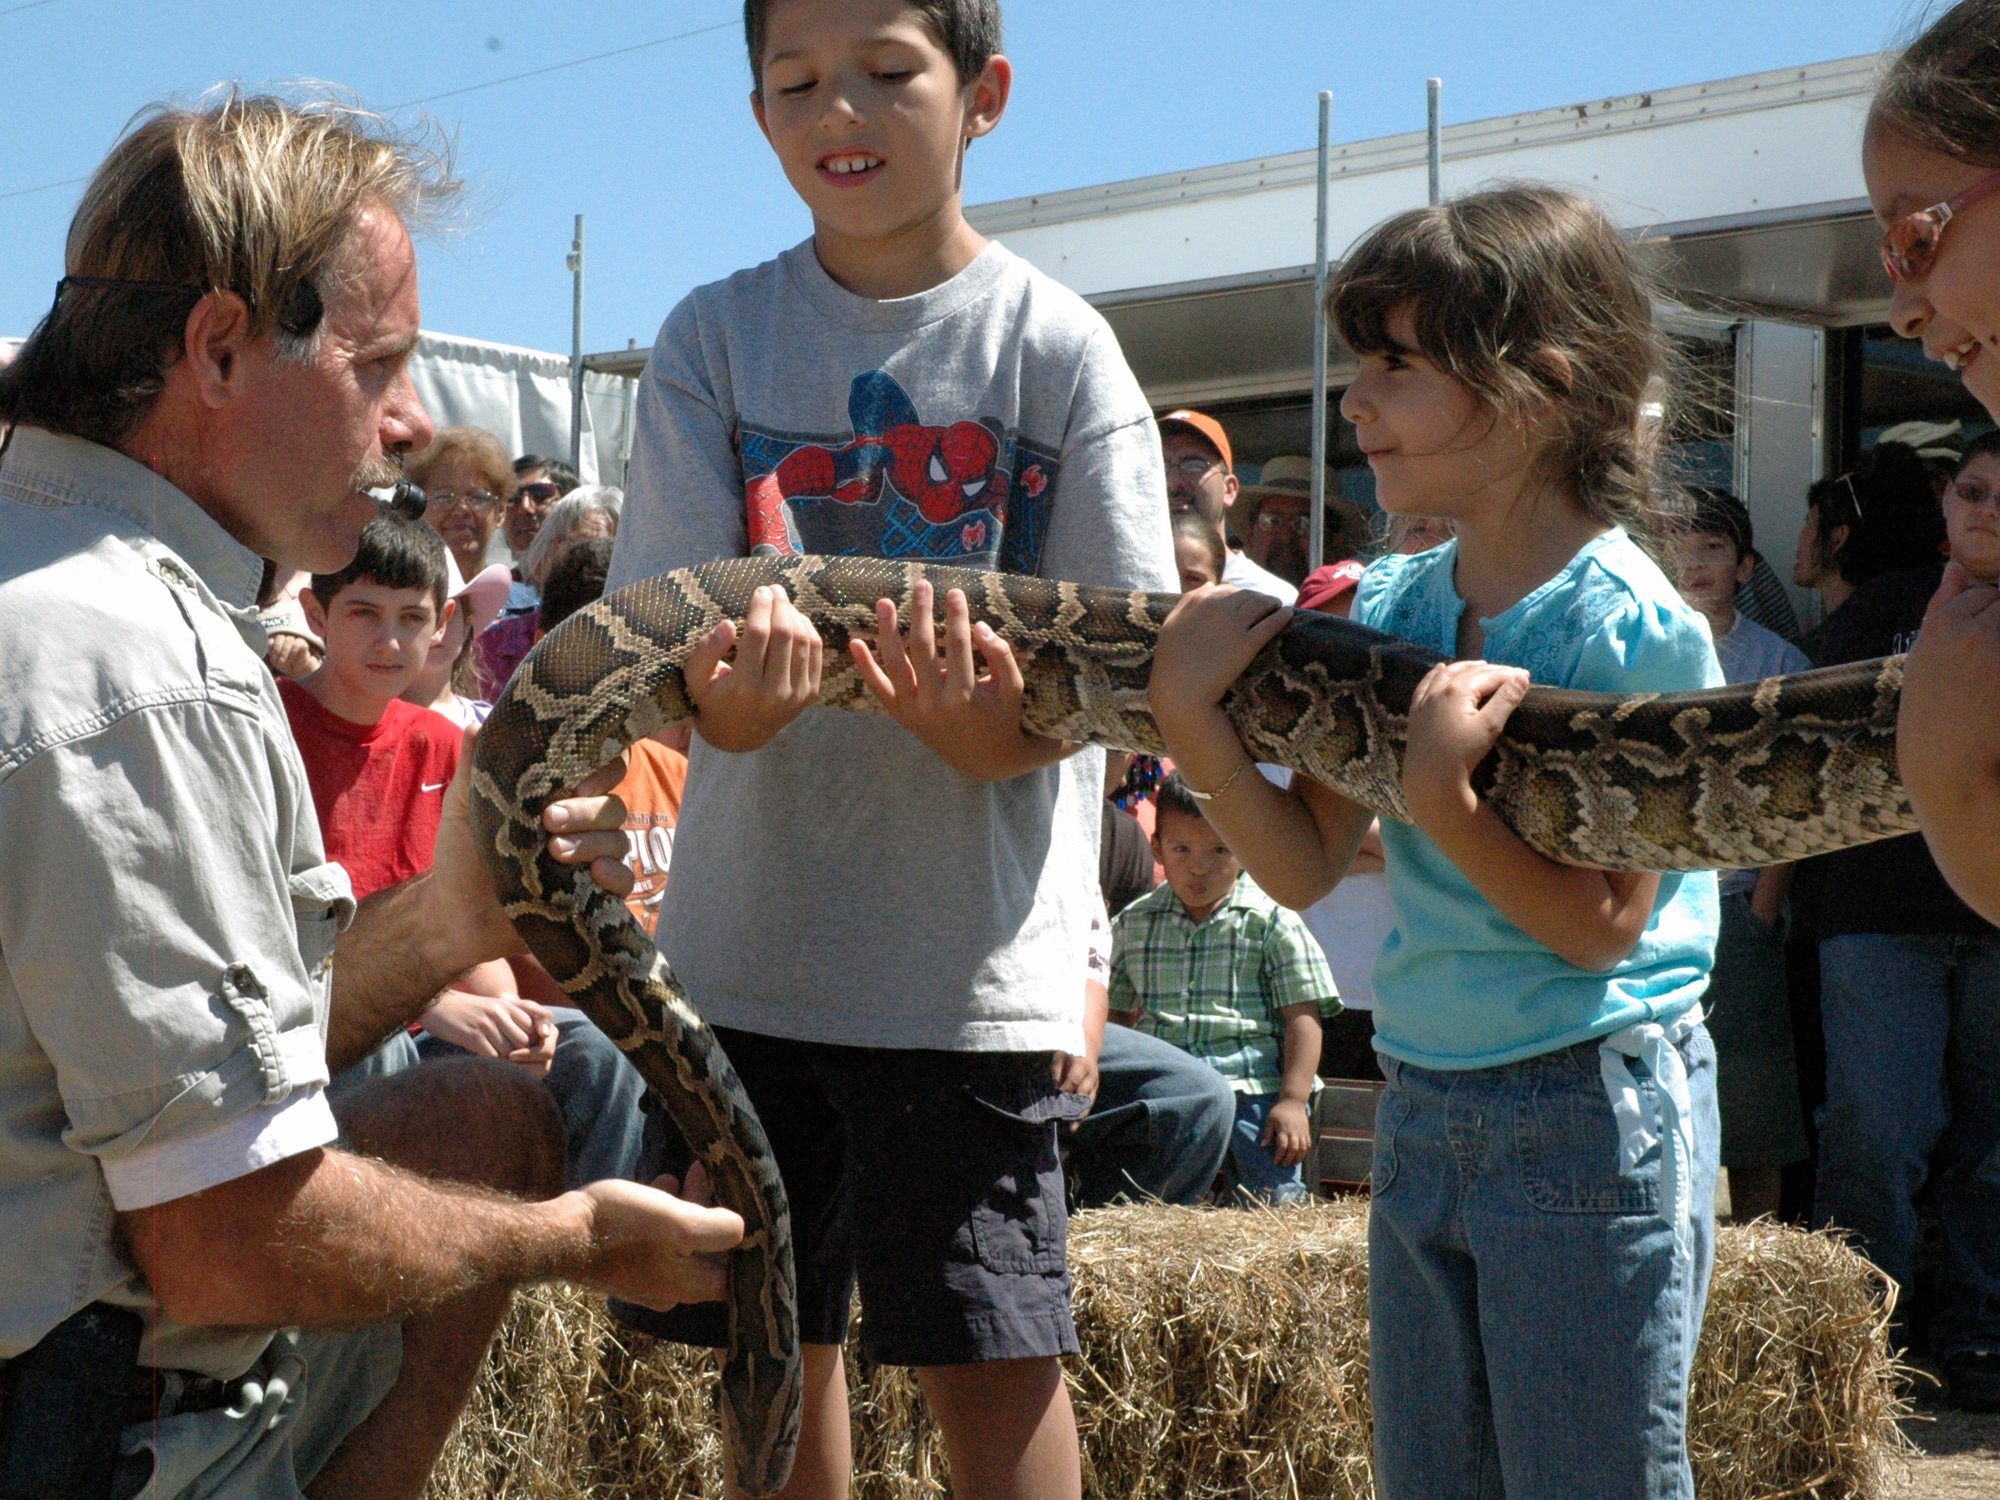 Big Event Reptile Adventures Expert showing a snake to Students at show